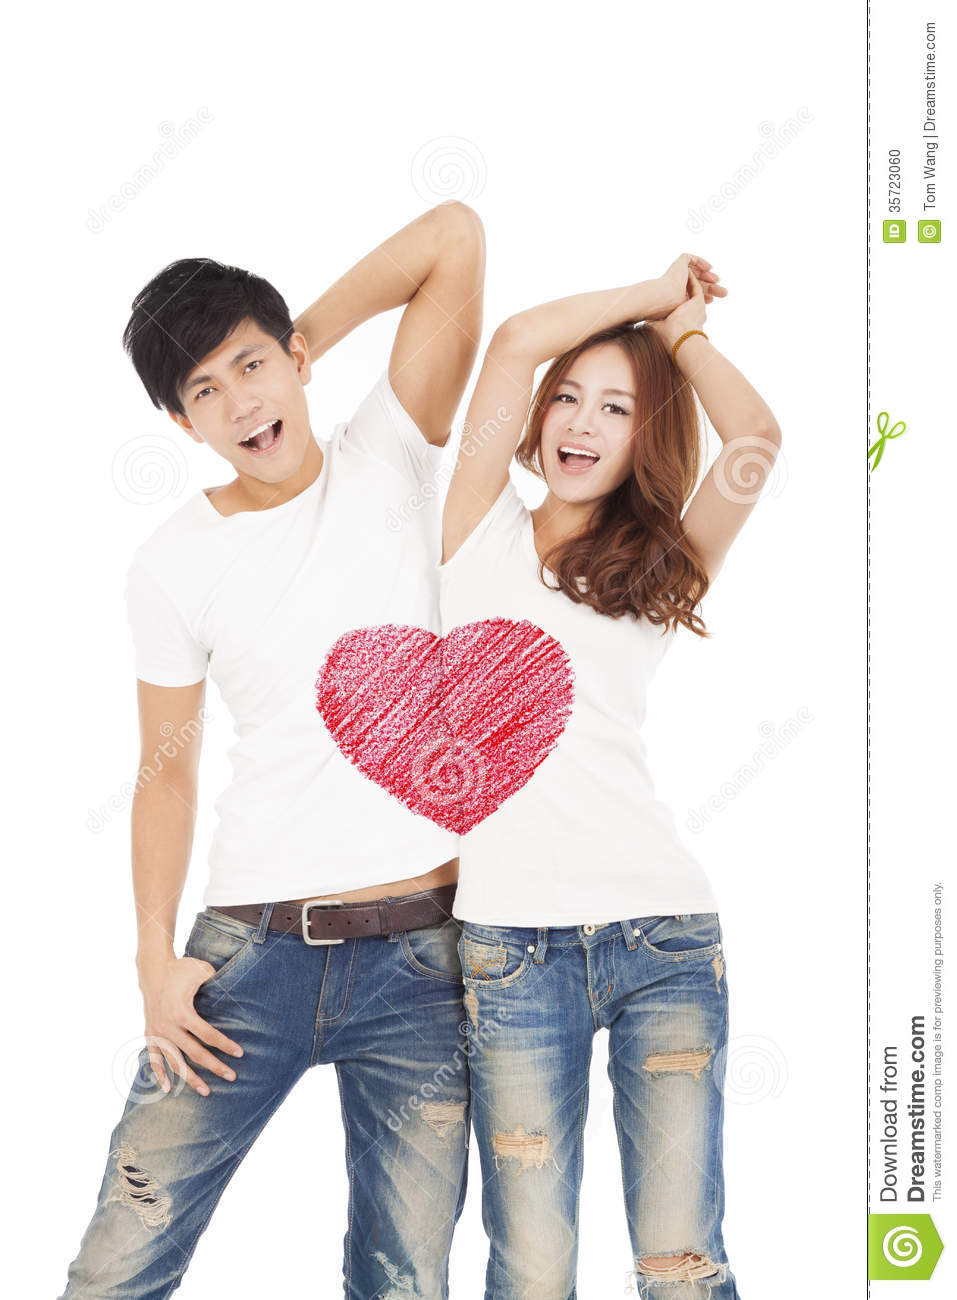 happy couple with love heart symbol design on the whit t